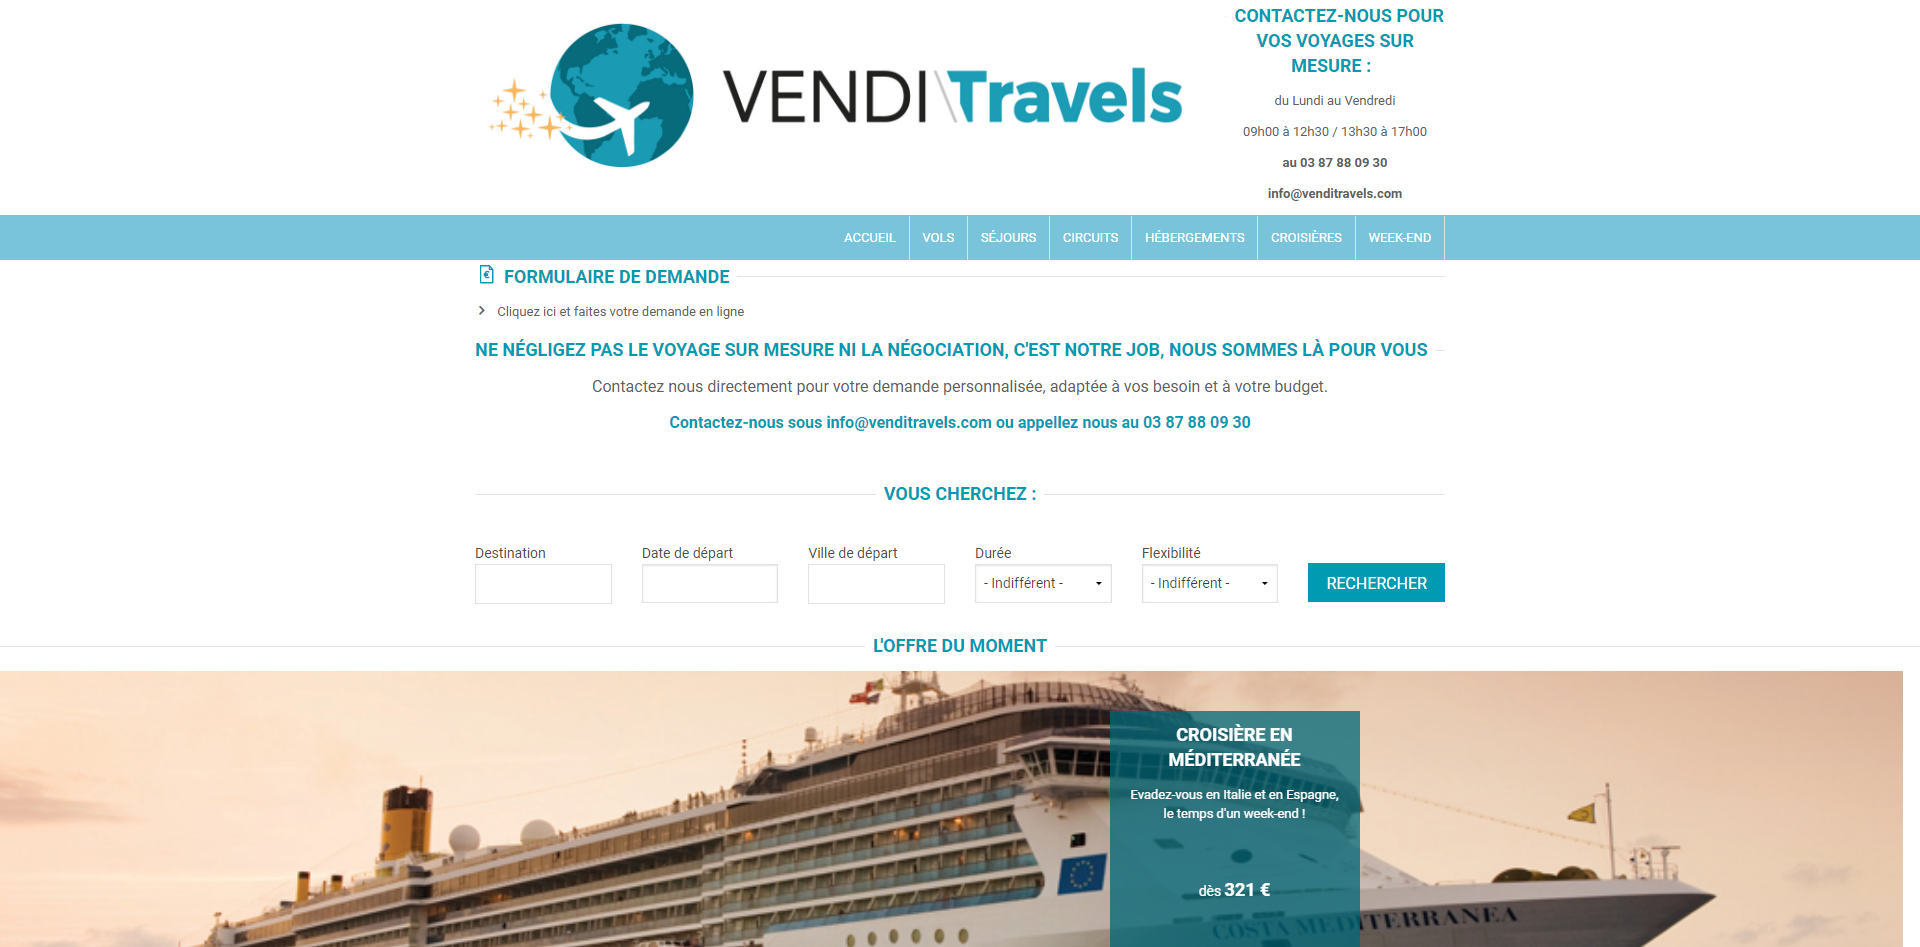 Vendi\Travels